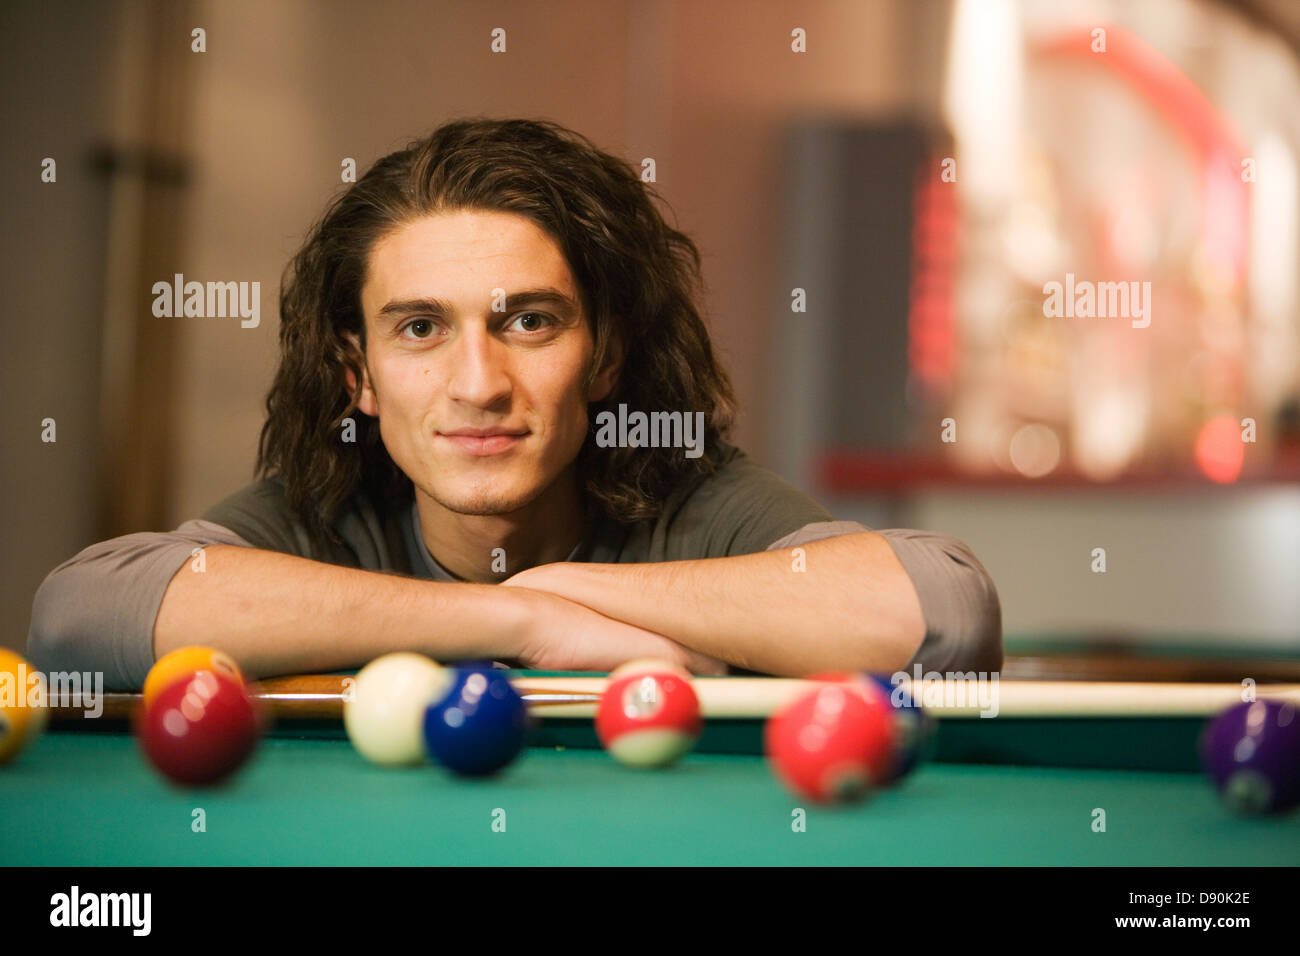 Male pool player chalking cue, close-up. - Stock Image